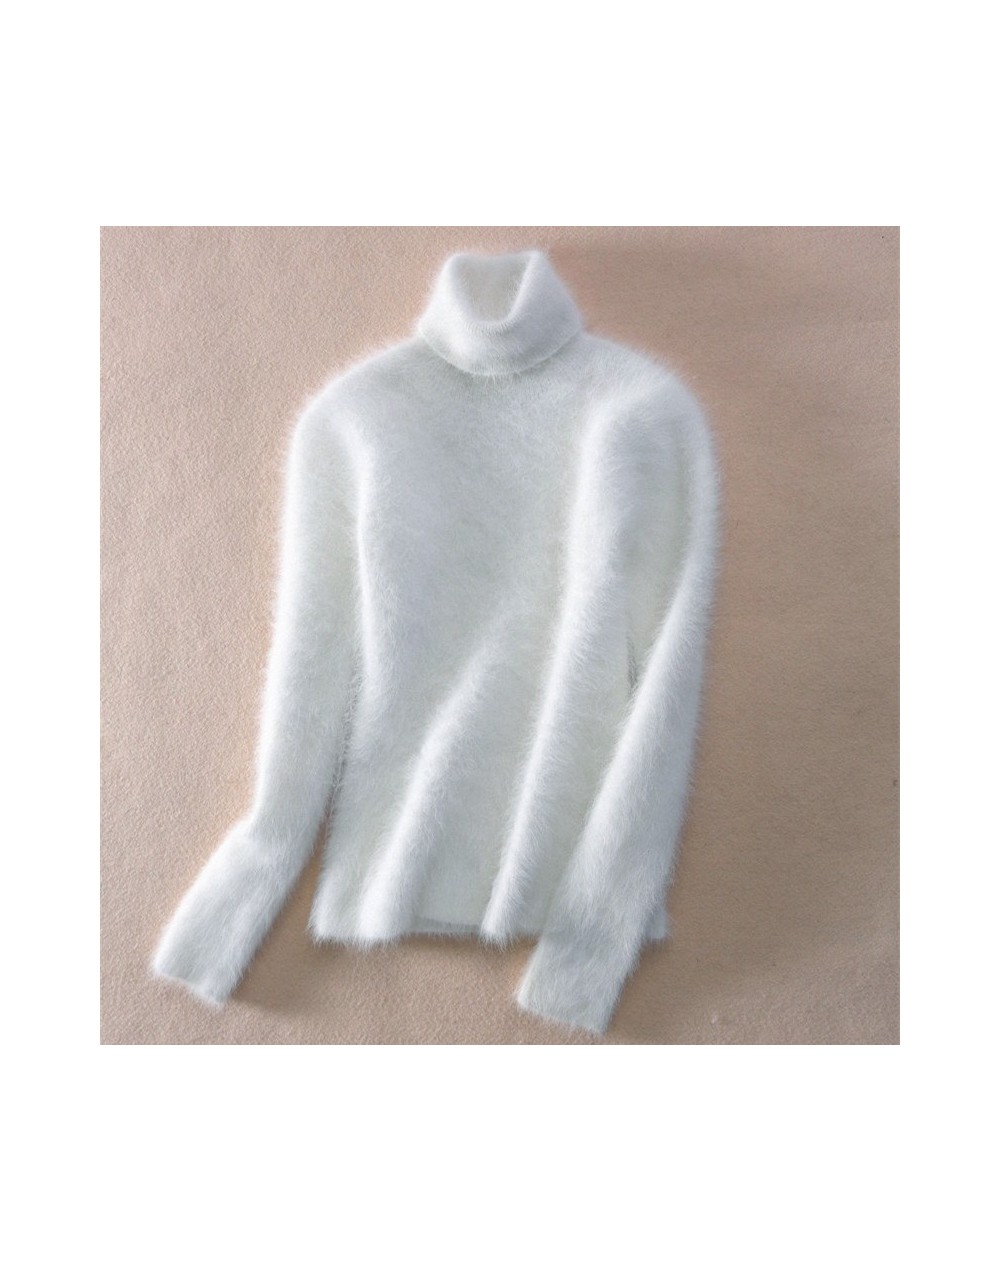 Faux Mink Cashmere Turtleneck Sweater Women 2019 Autumn Winter White Pullover Jumper Pull Femme Hiver Streetwear knitted Swe...